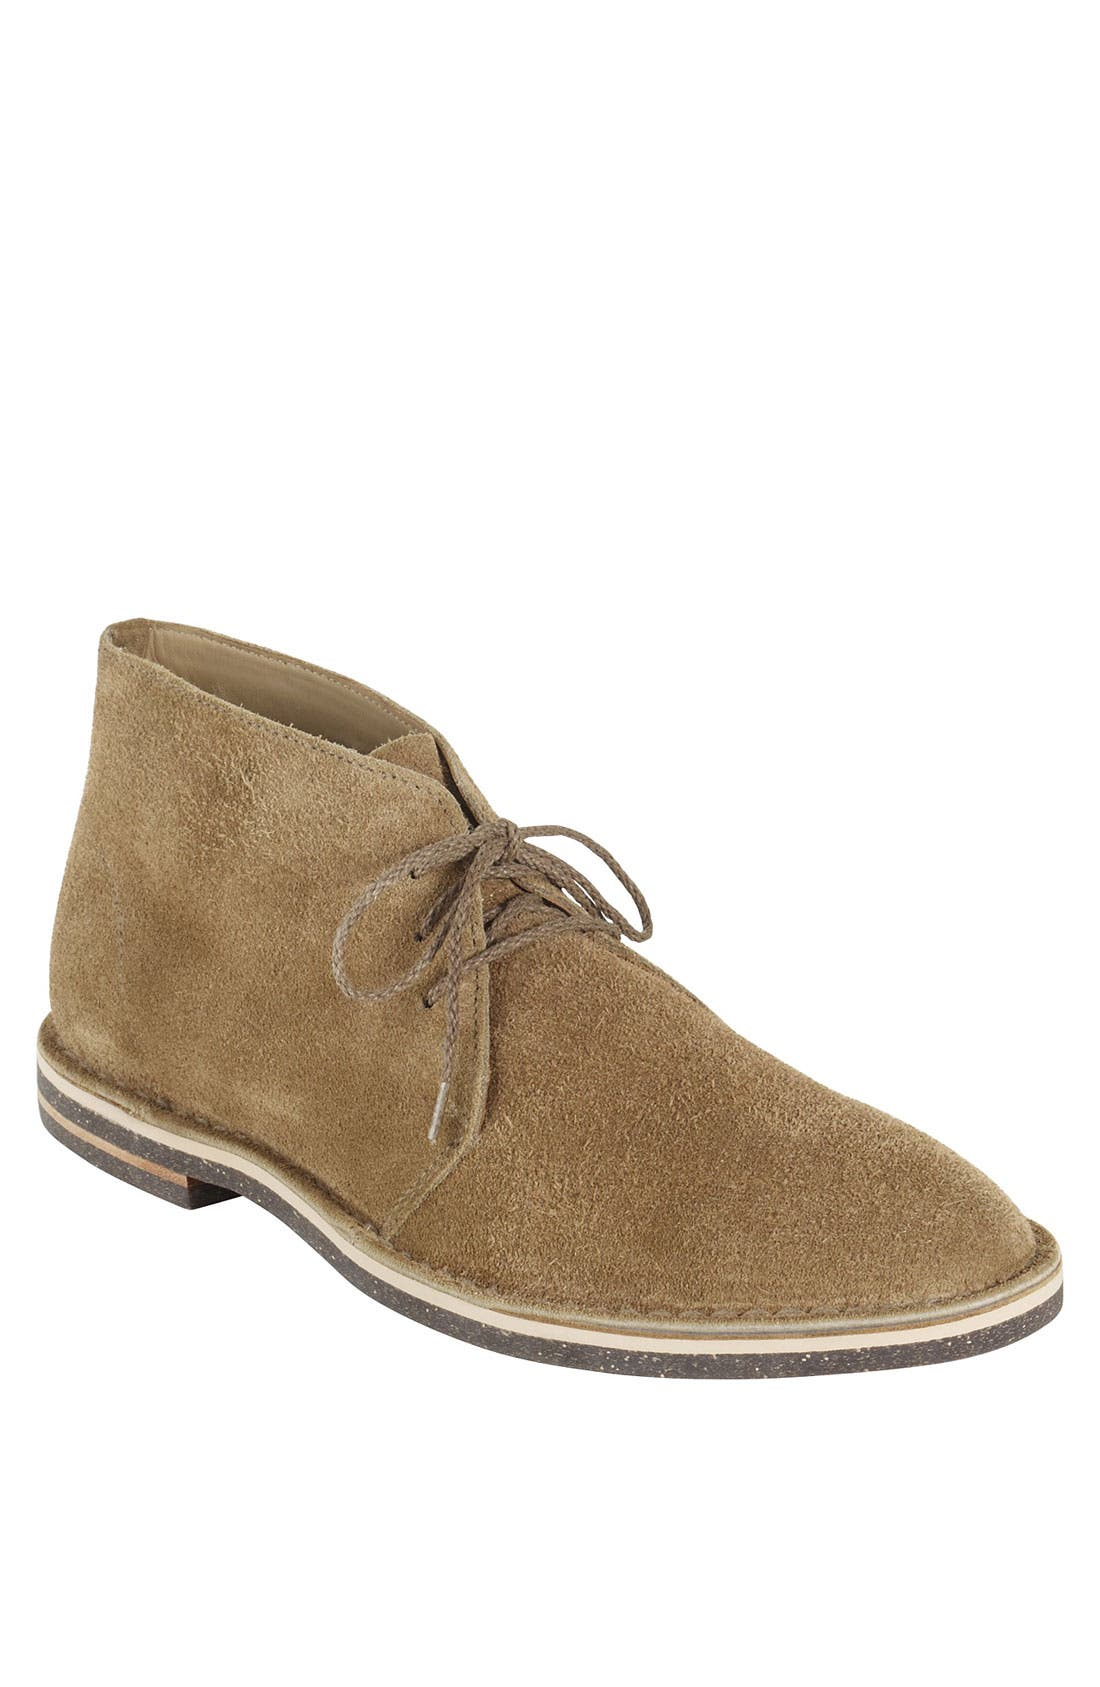 Alternate Image 1 Selected - Cole Haan 'Paul' Winter Chukka Boot